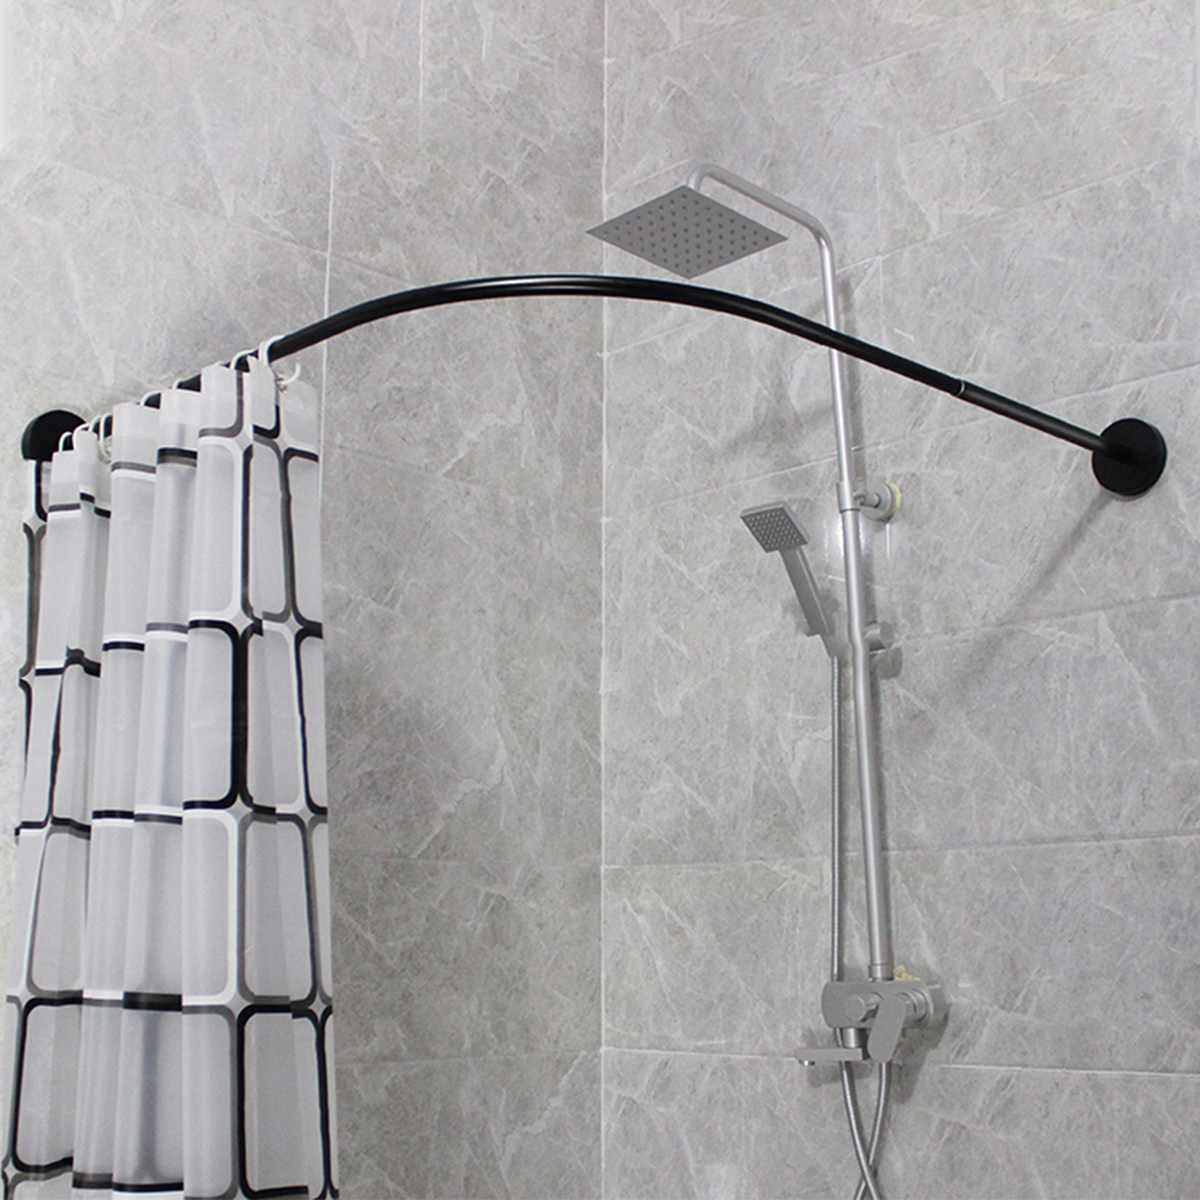 Us 39 98 46 Off Extendable Corner Shower Curtain Rod Pole 90 130cm Stainless Steel Rail Rod Bar High Quality Bath Door Hardware Heavy Loaded In